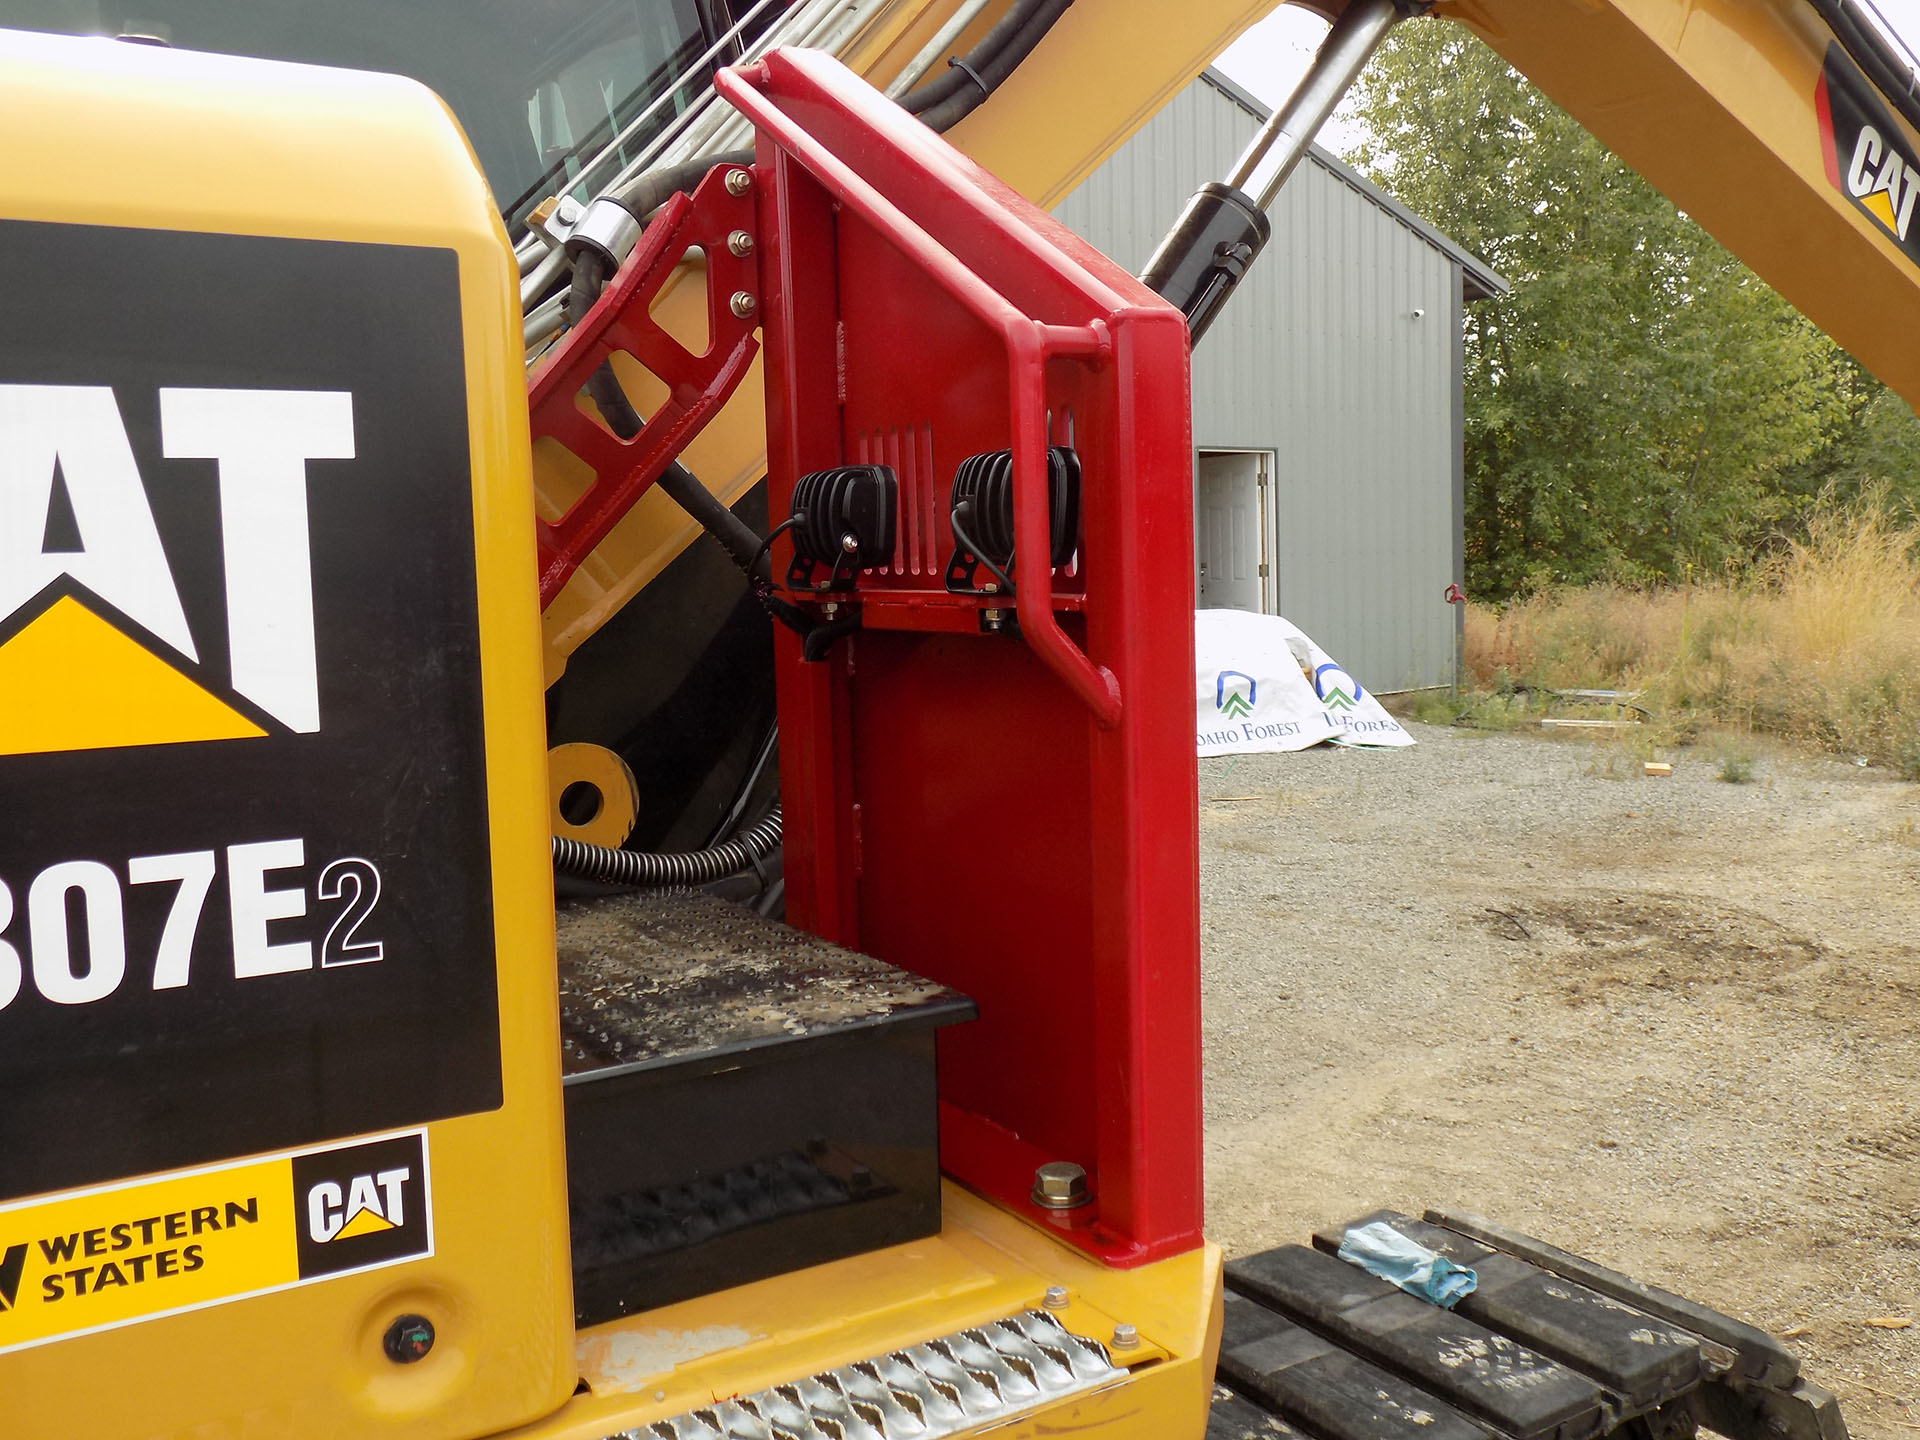 CAT 307E2 Custom Guarding